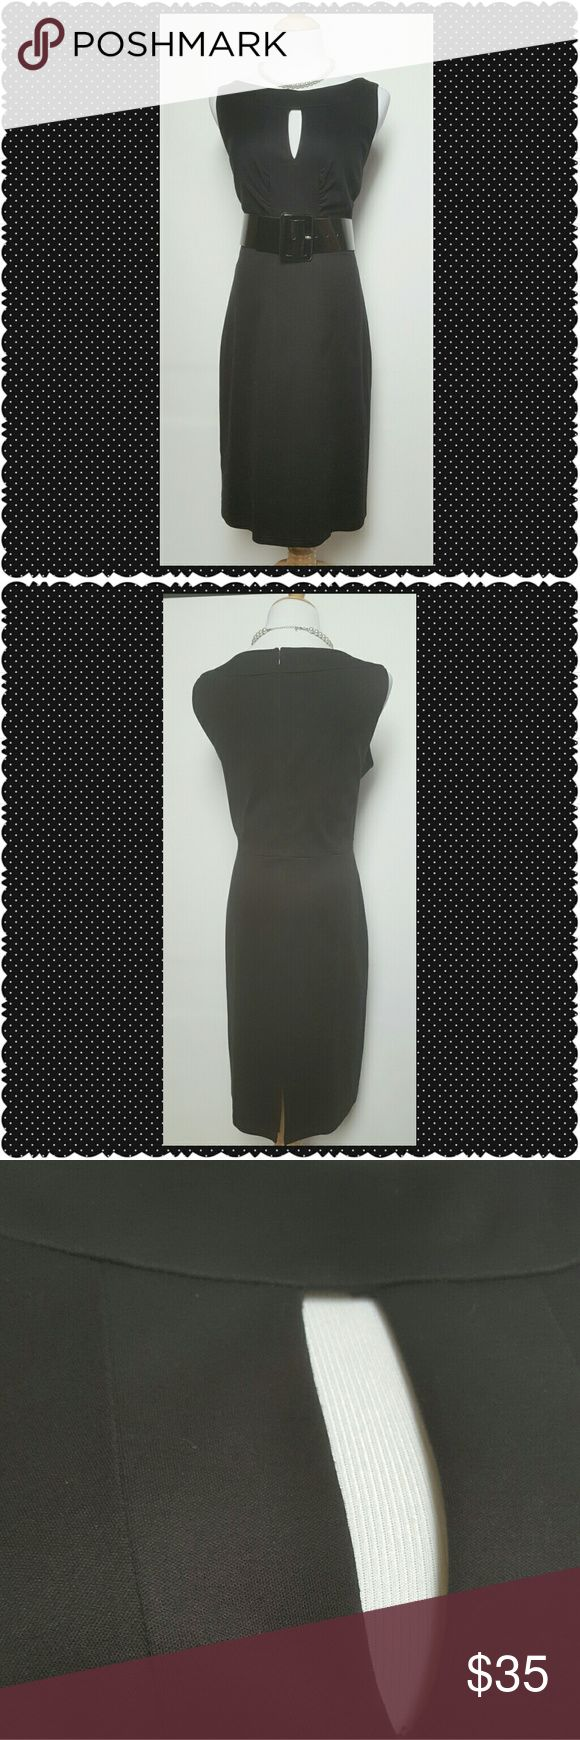 Kay Unger Black Dress Kay Unger Black dress. Sleeveless,  back zip closure with accent keyhole cut out. Perfect, no flaws. Belt not included. Kay Unger Dresses